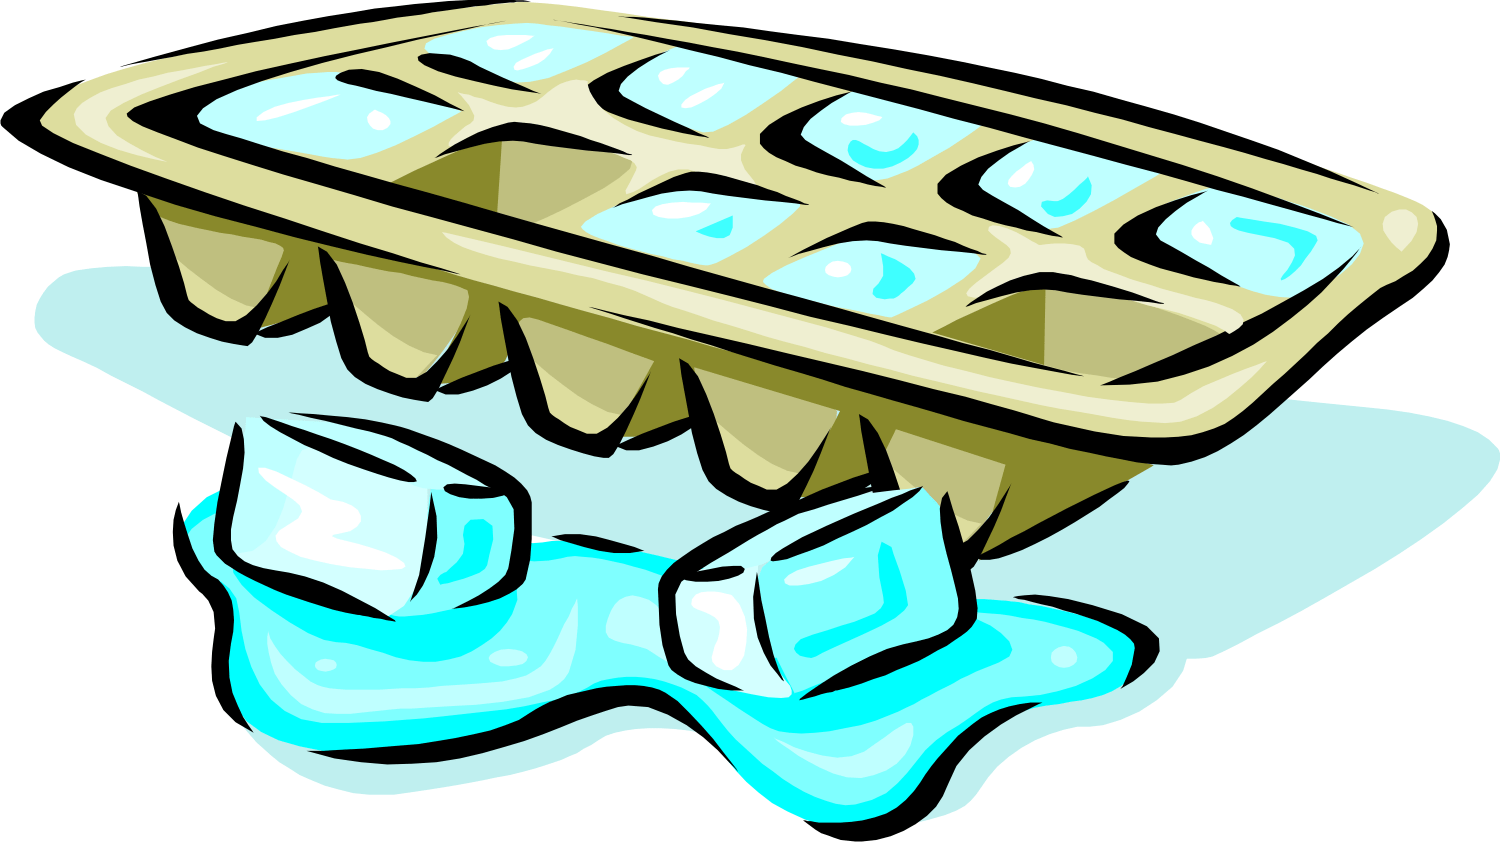 Library Of Ice Cube Tray Image Stock Files Clipart Art